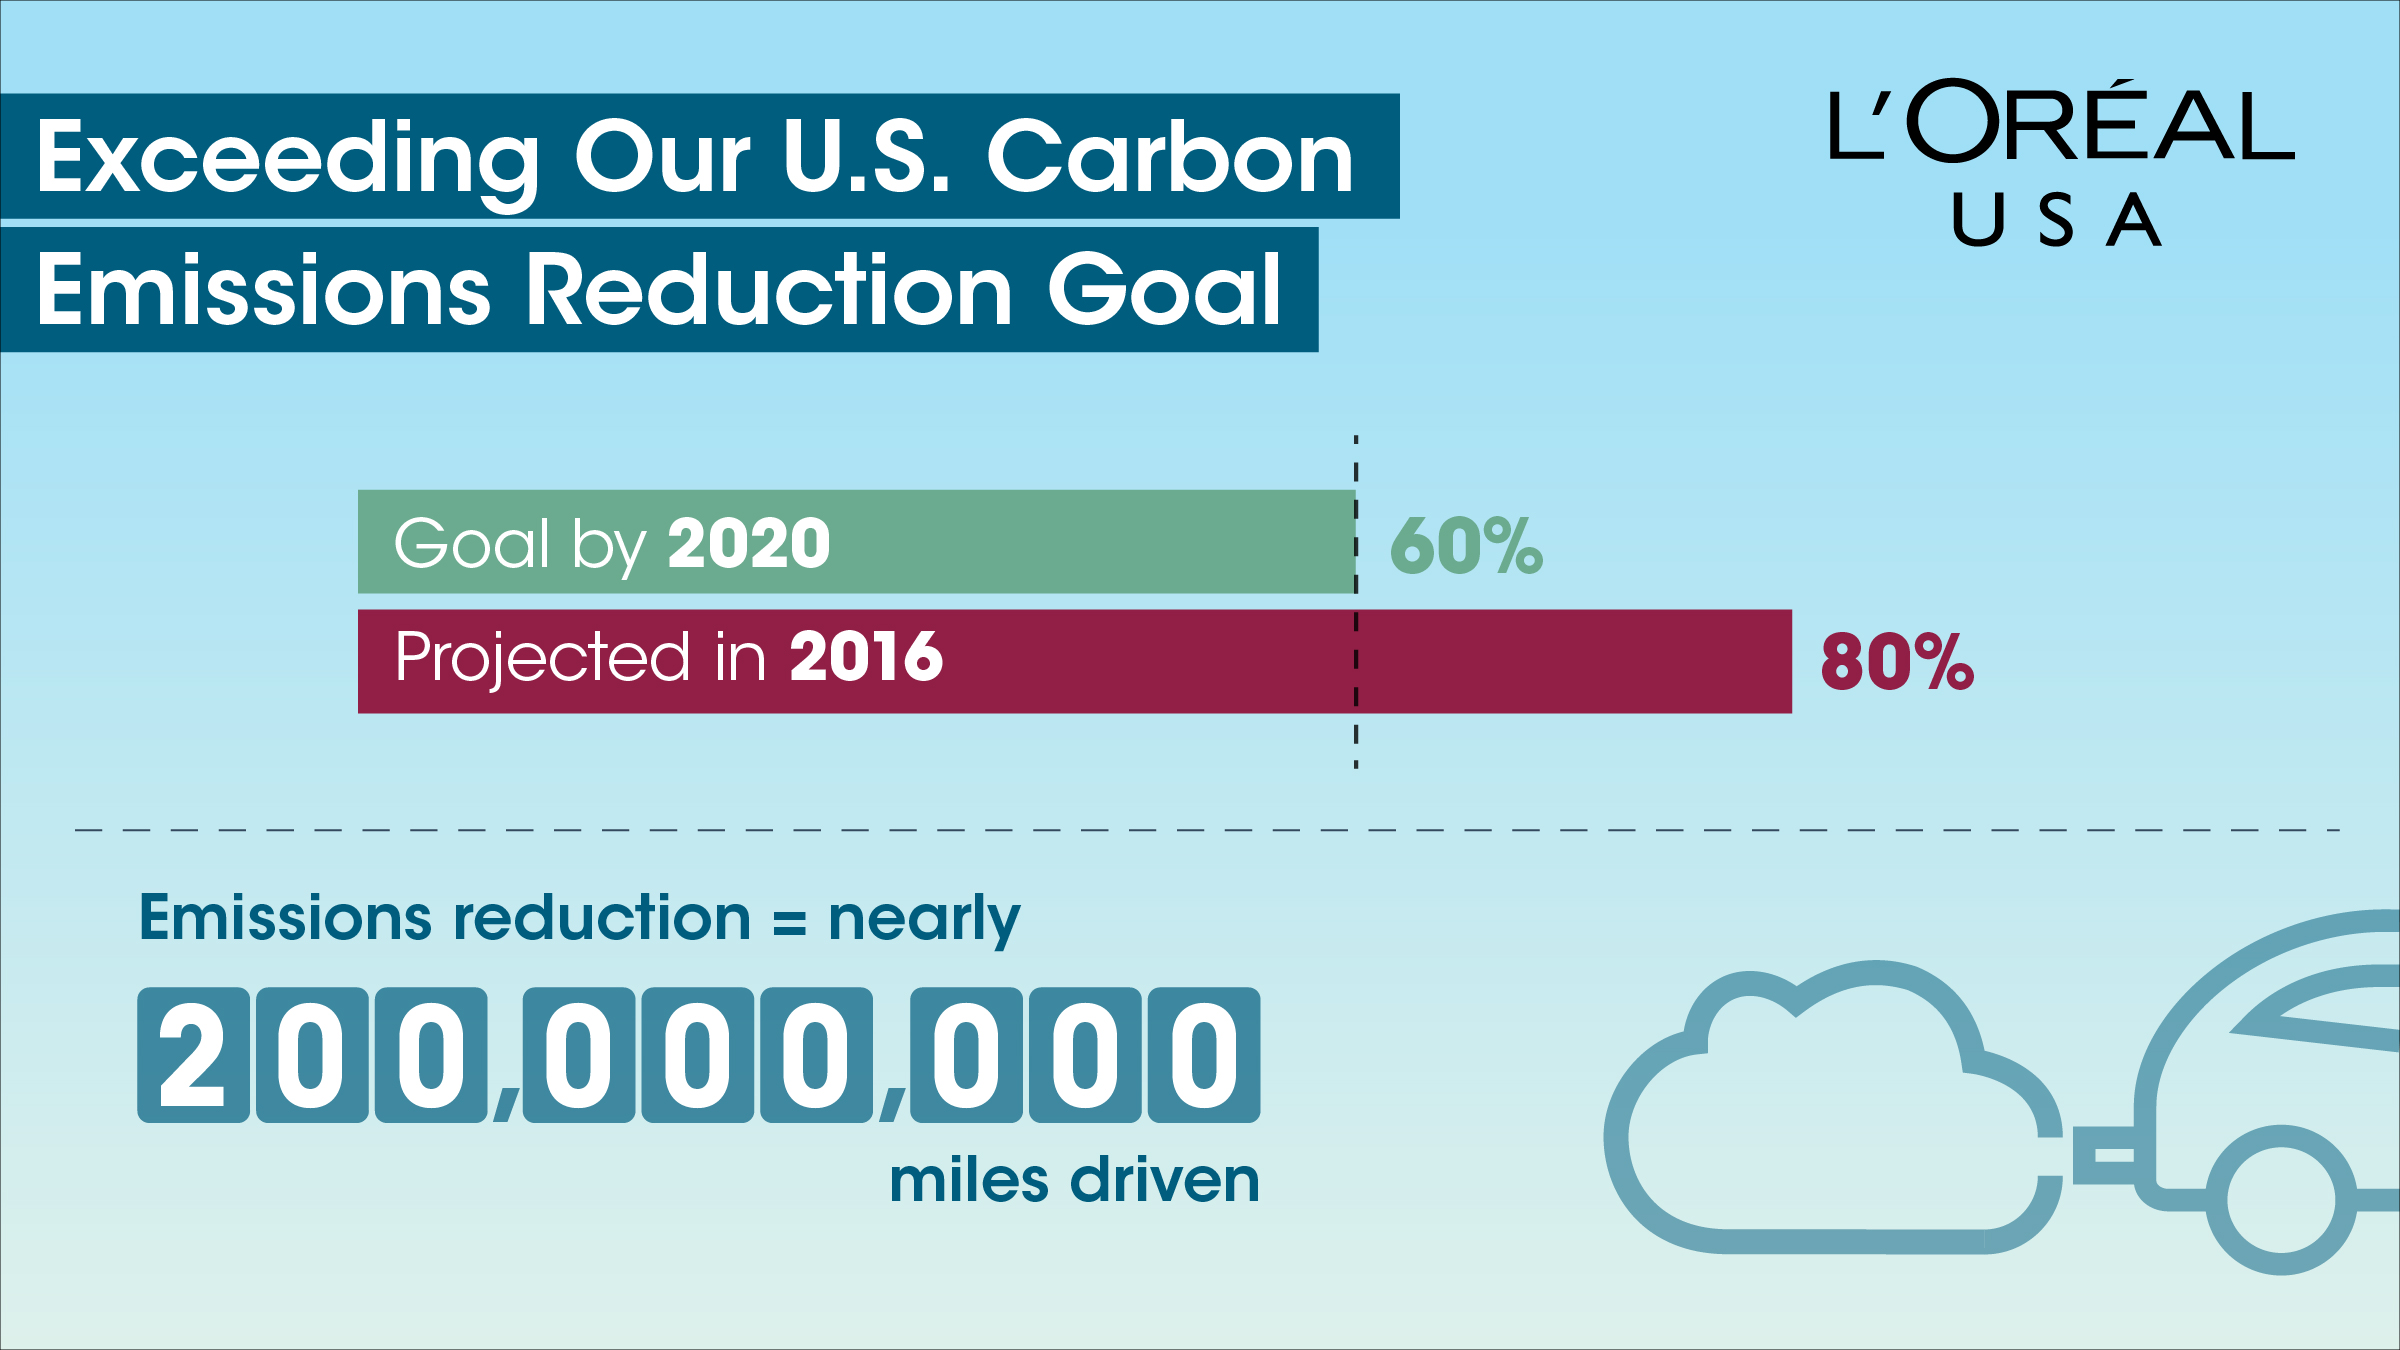 L'Oreal USA Carbon Reduction Strategy